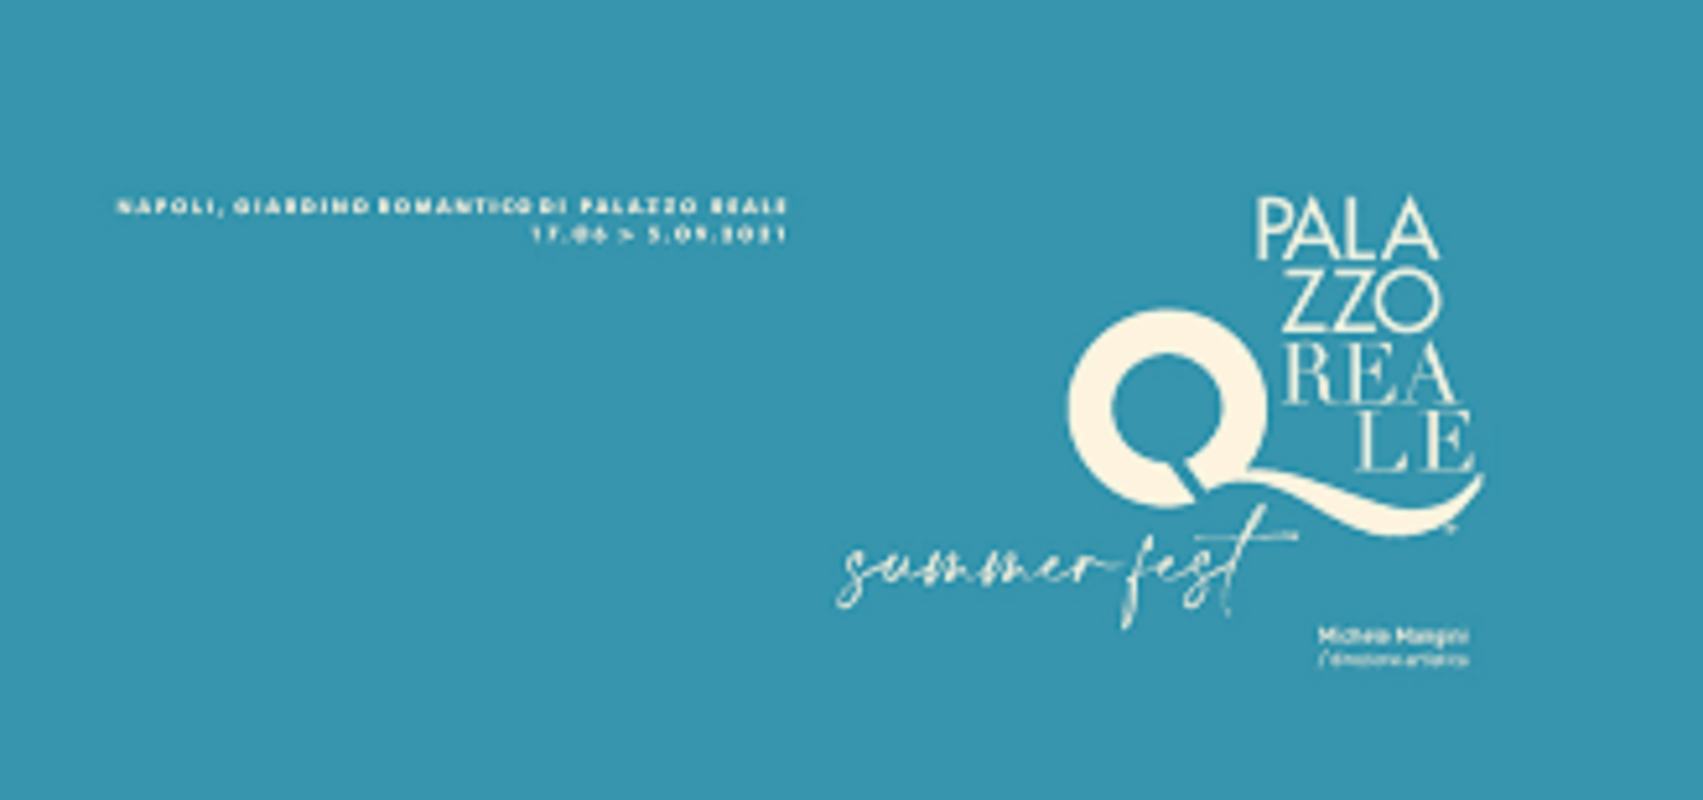 Palazzo Reale Summer Fest 2021